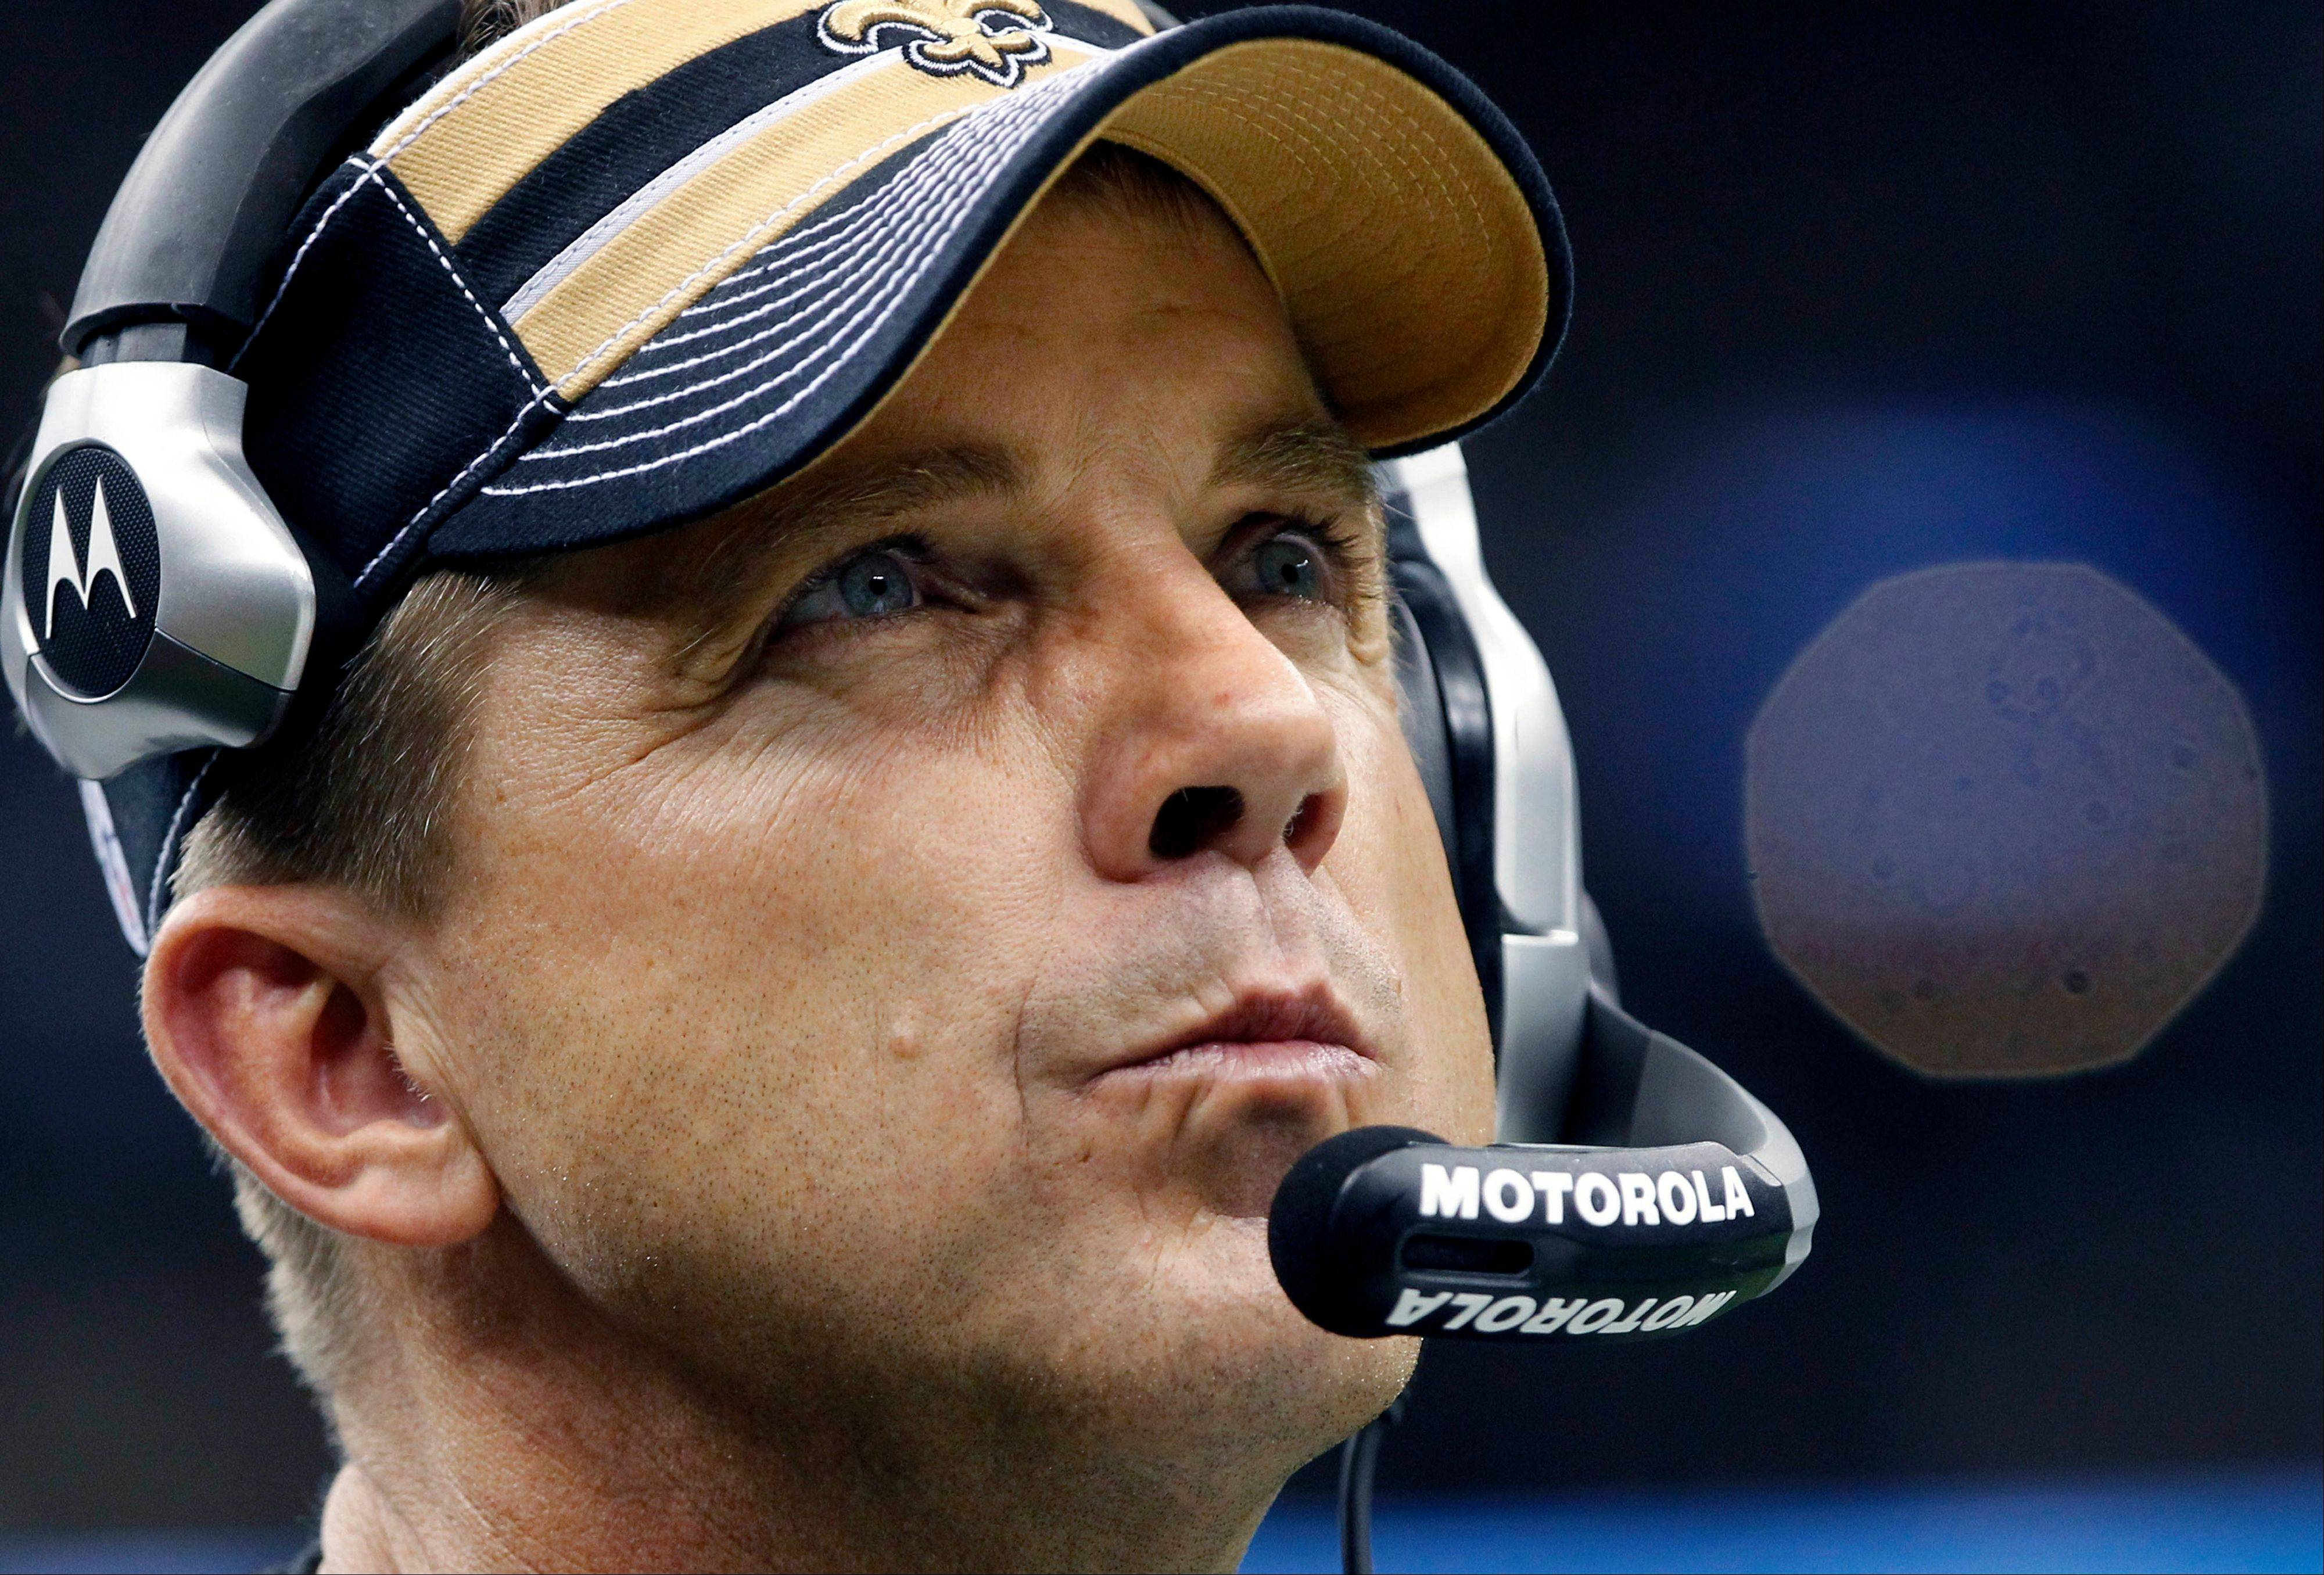 Under a ruling handed down Wednesday by NFL officials, New Orleans Saints head coach Sean Payton will be suspended for the 2012 season. Former Saints defensive coordinator Gregg Williams also is banned from the league indefinitely because of the team's bounty program that targeted opposing players.